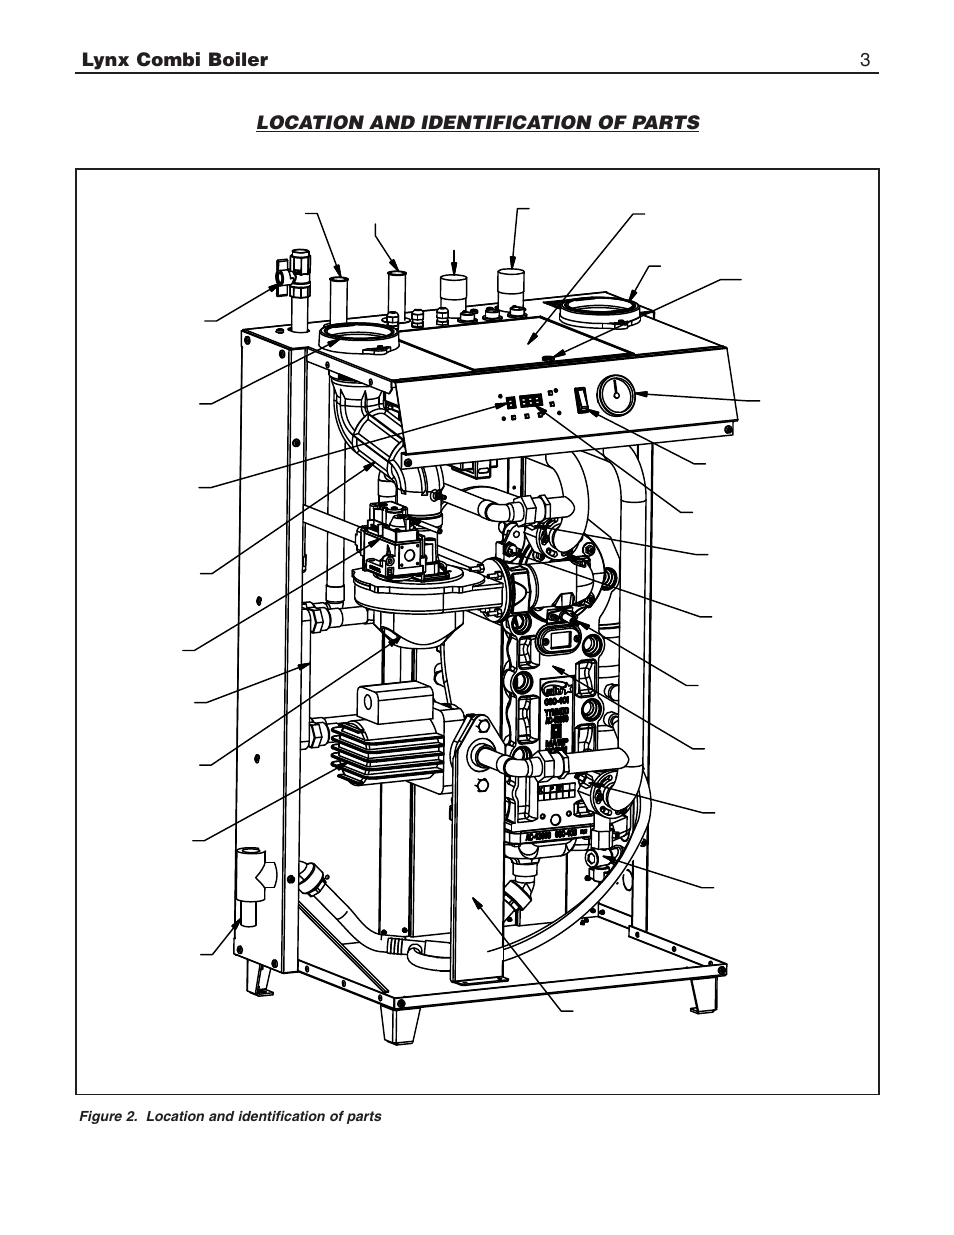 Lynx combi boiler 3, Location and identification of parts | Slant/Fin  LX-150CB User Manual | Page 3 / 44 | Original modeManuals Directory